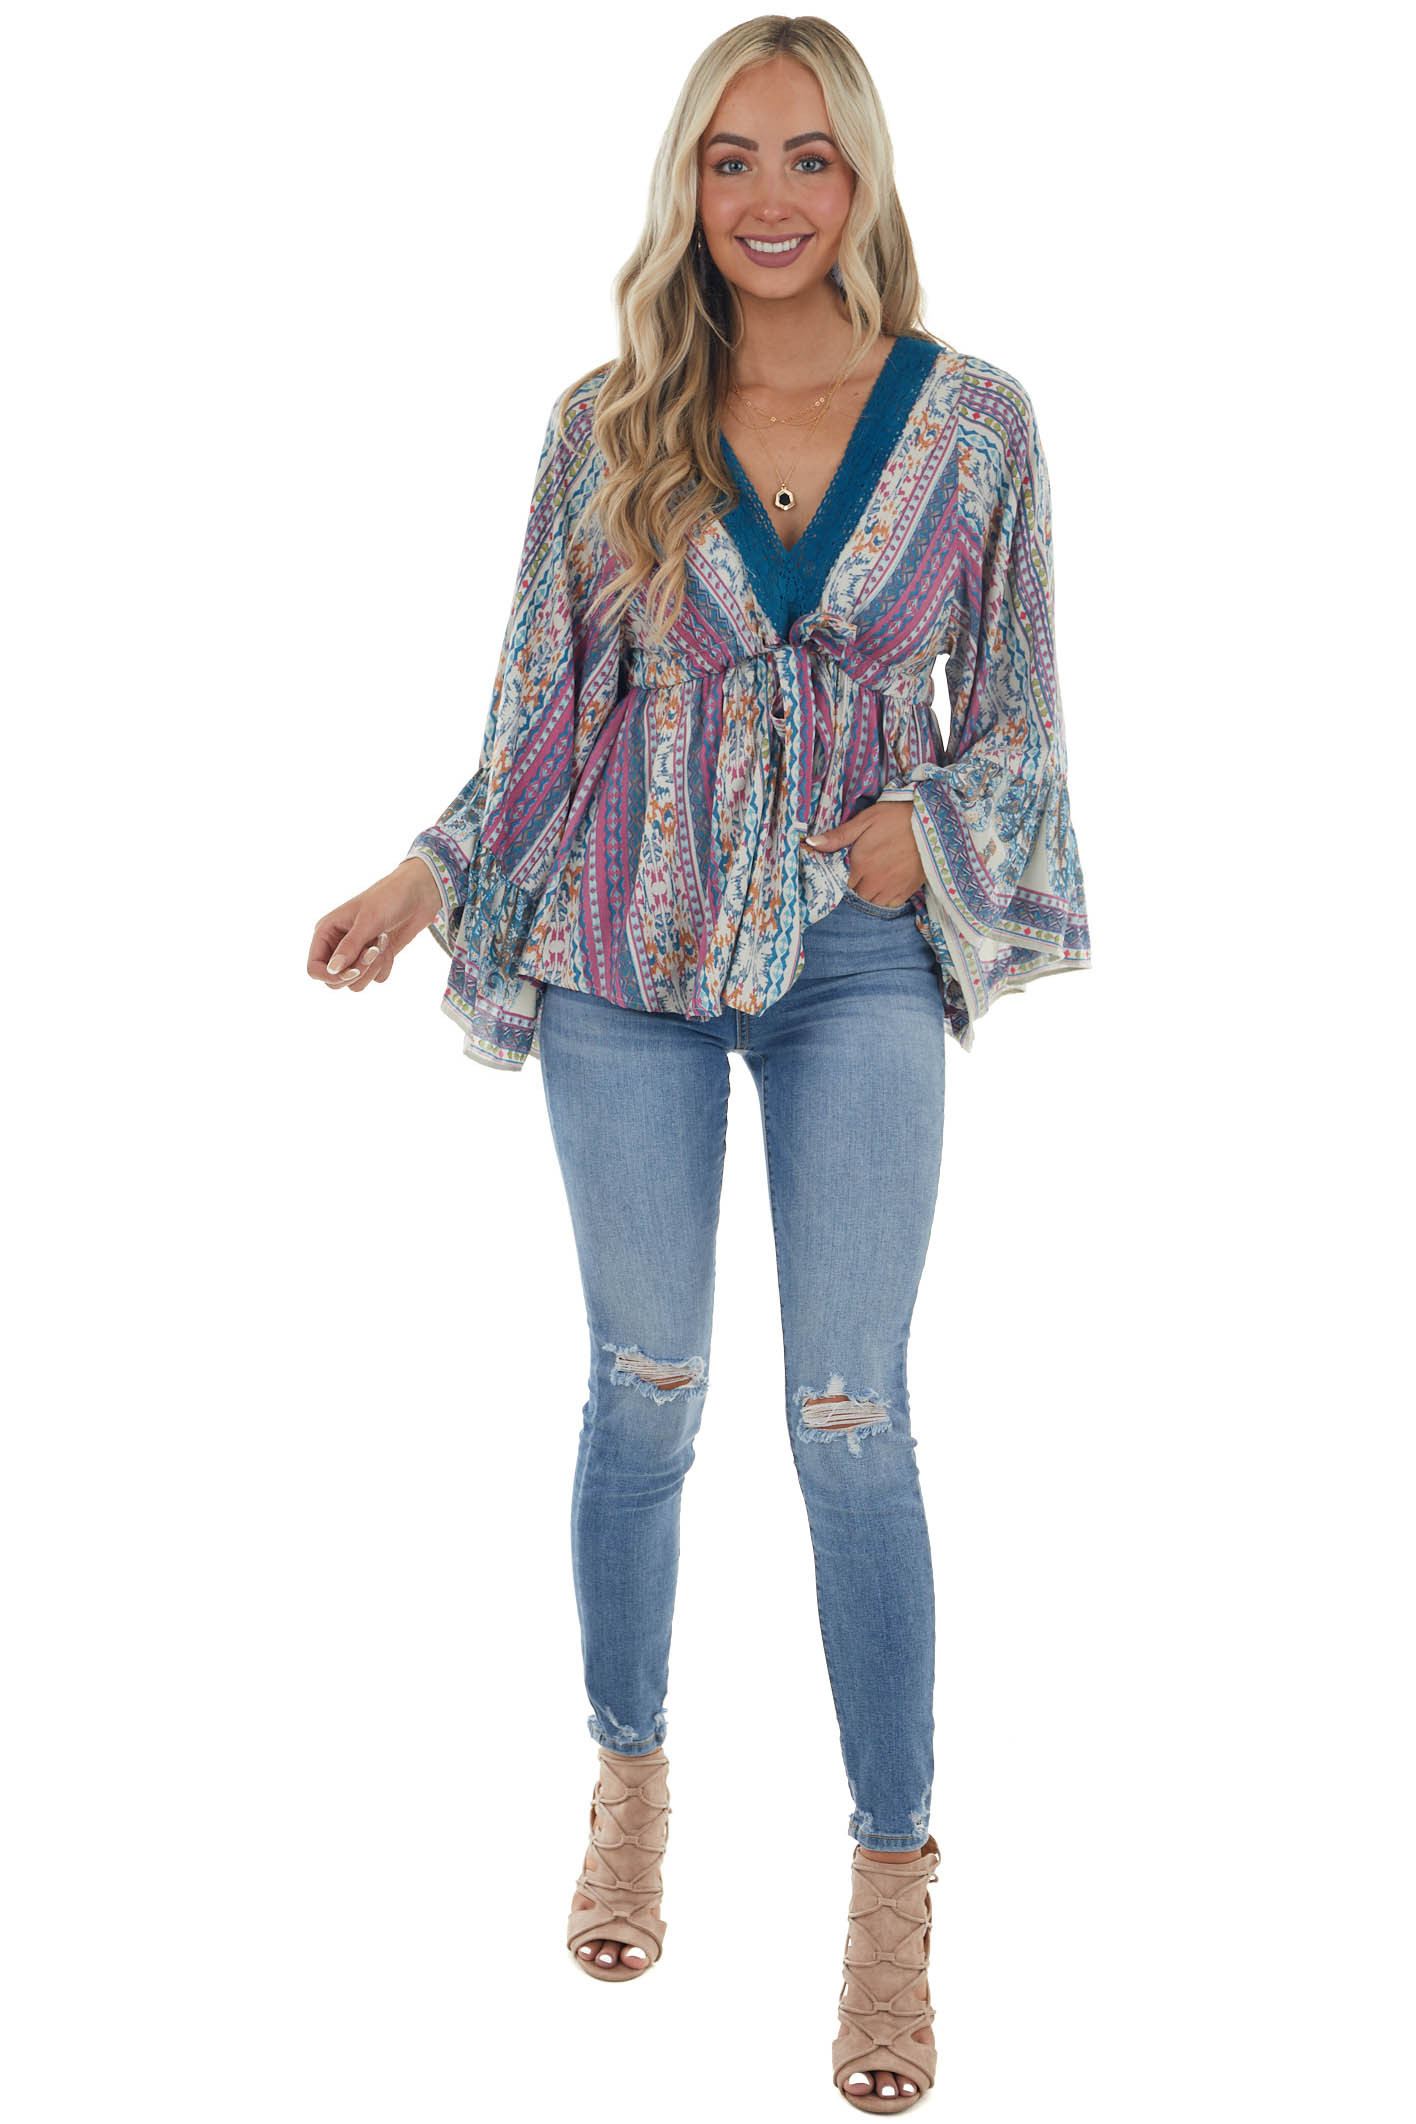 Catalina Blue Printed Drop Waist Top with Tie